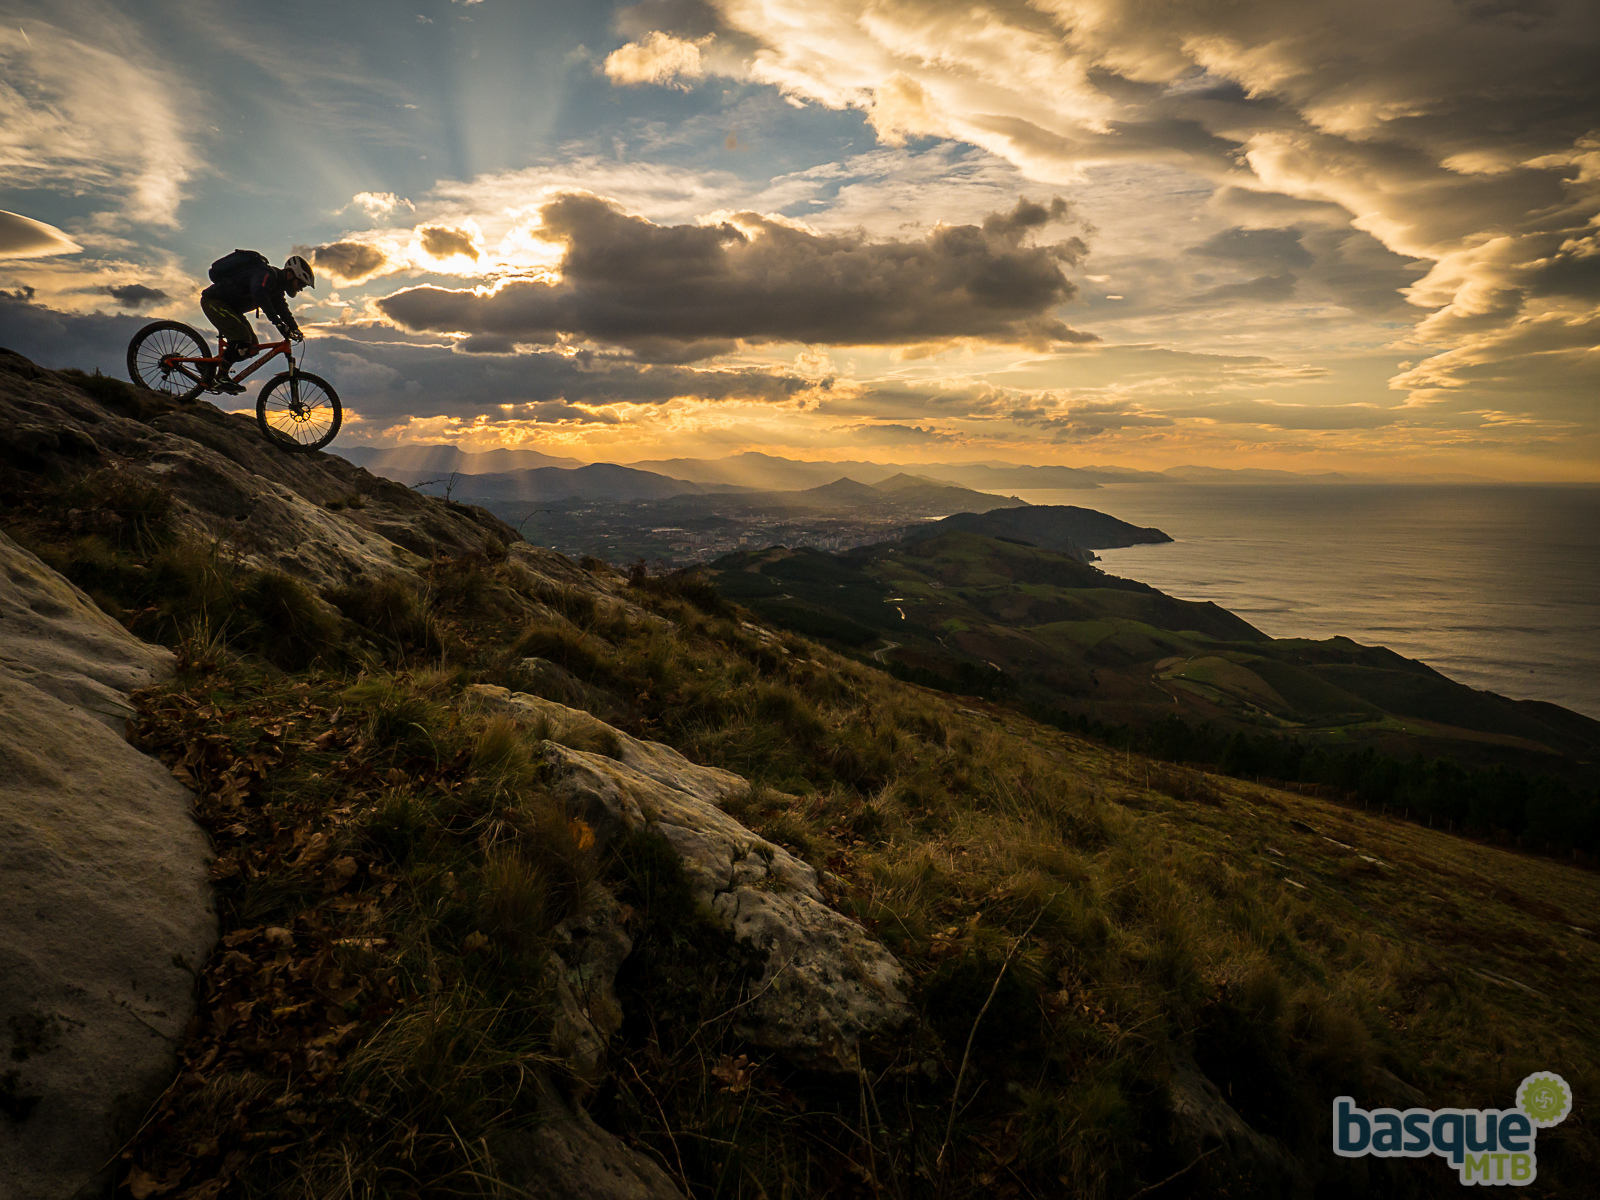 Ed loving is slacked out Santa Cruz Solo on the Basque Coast. Check that light, it was absolutely amazing.